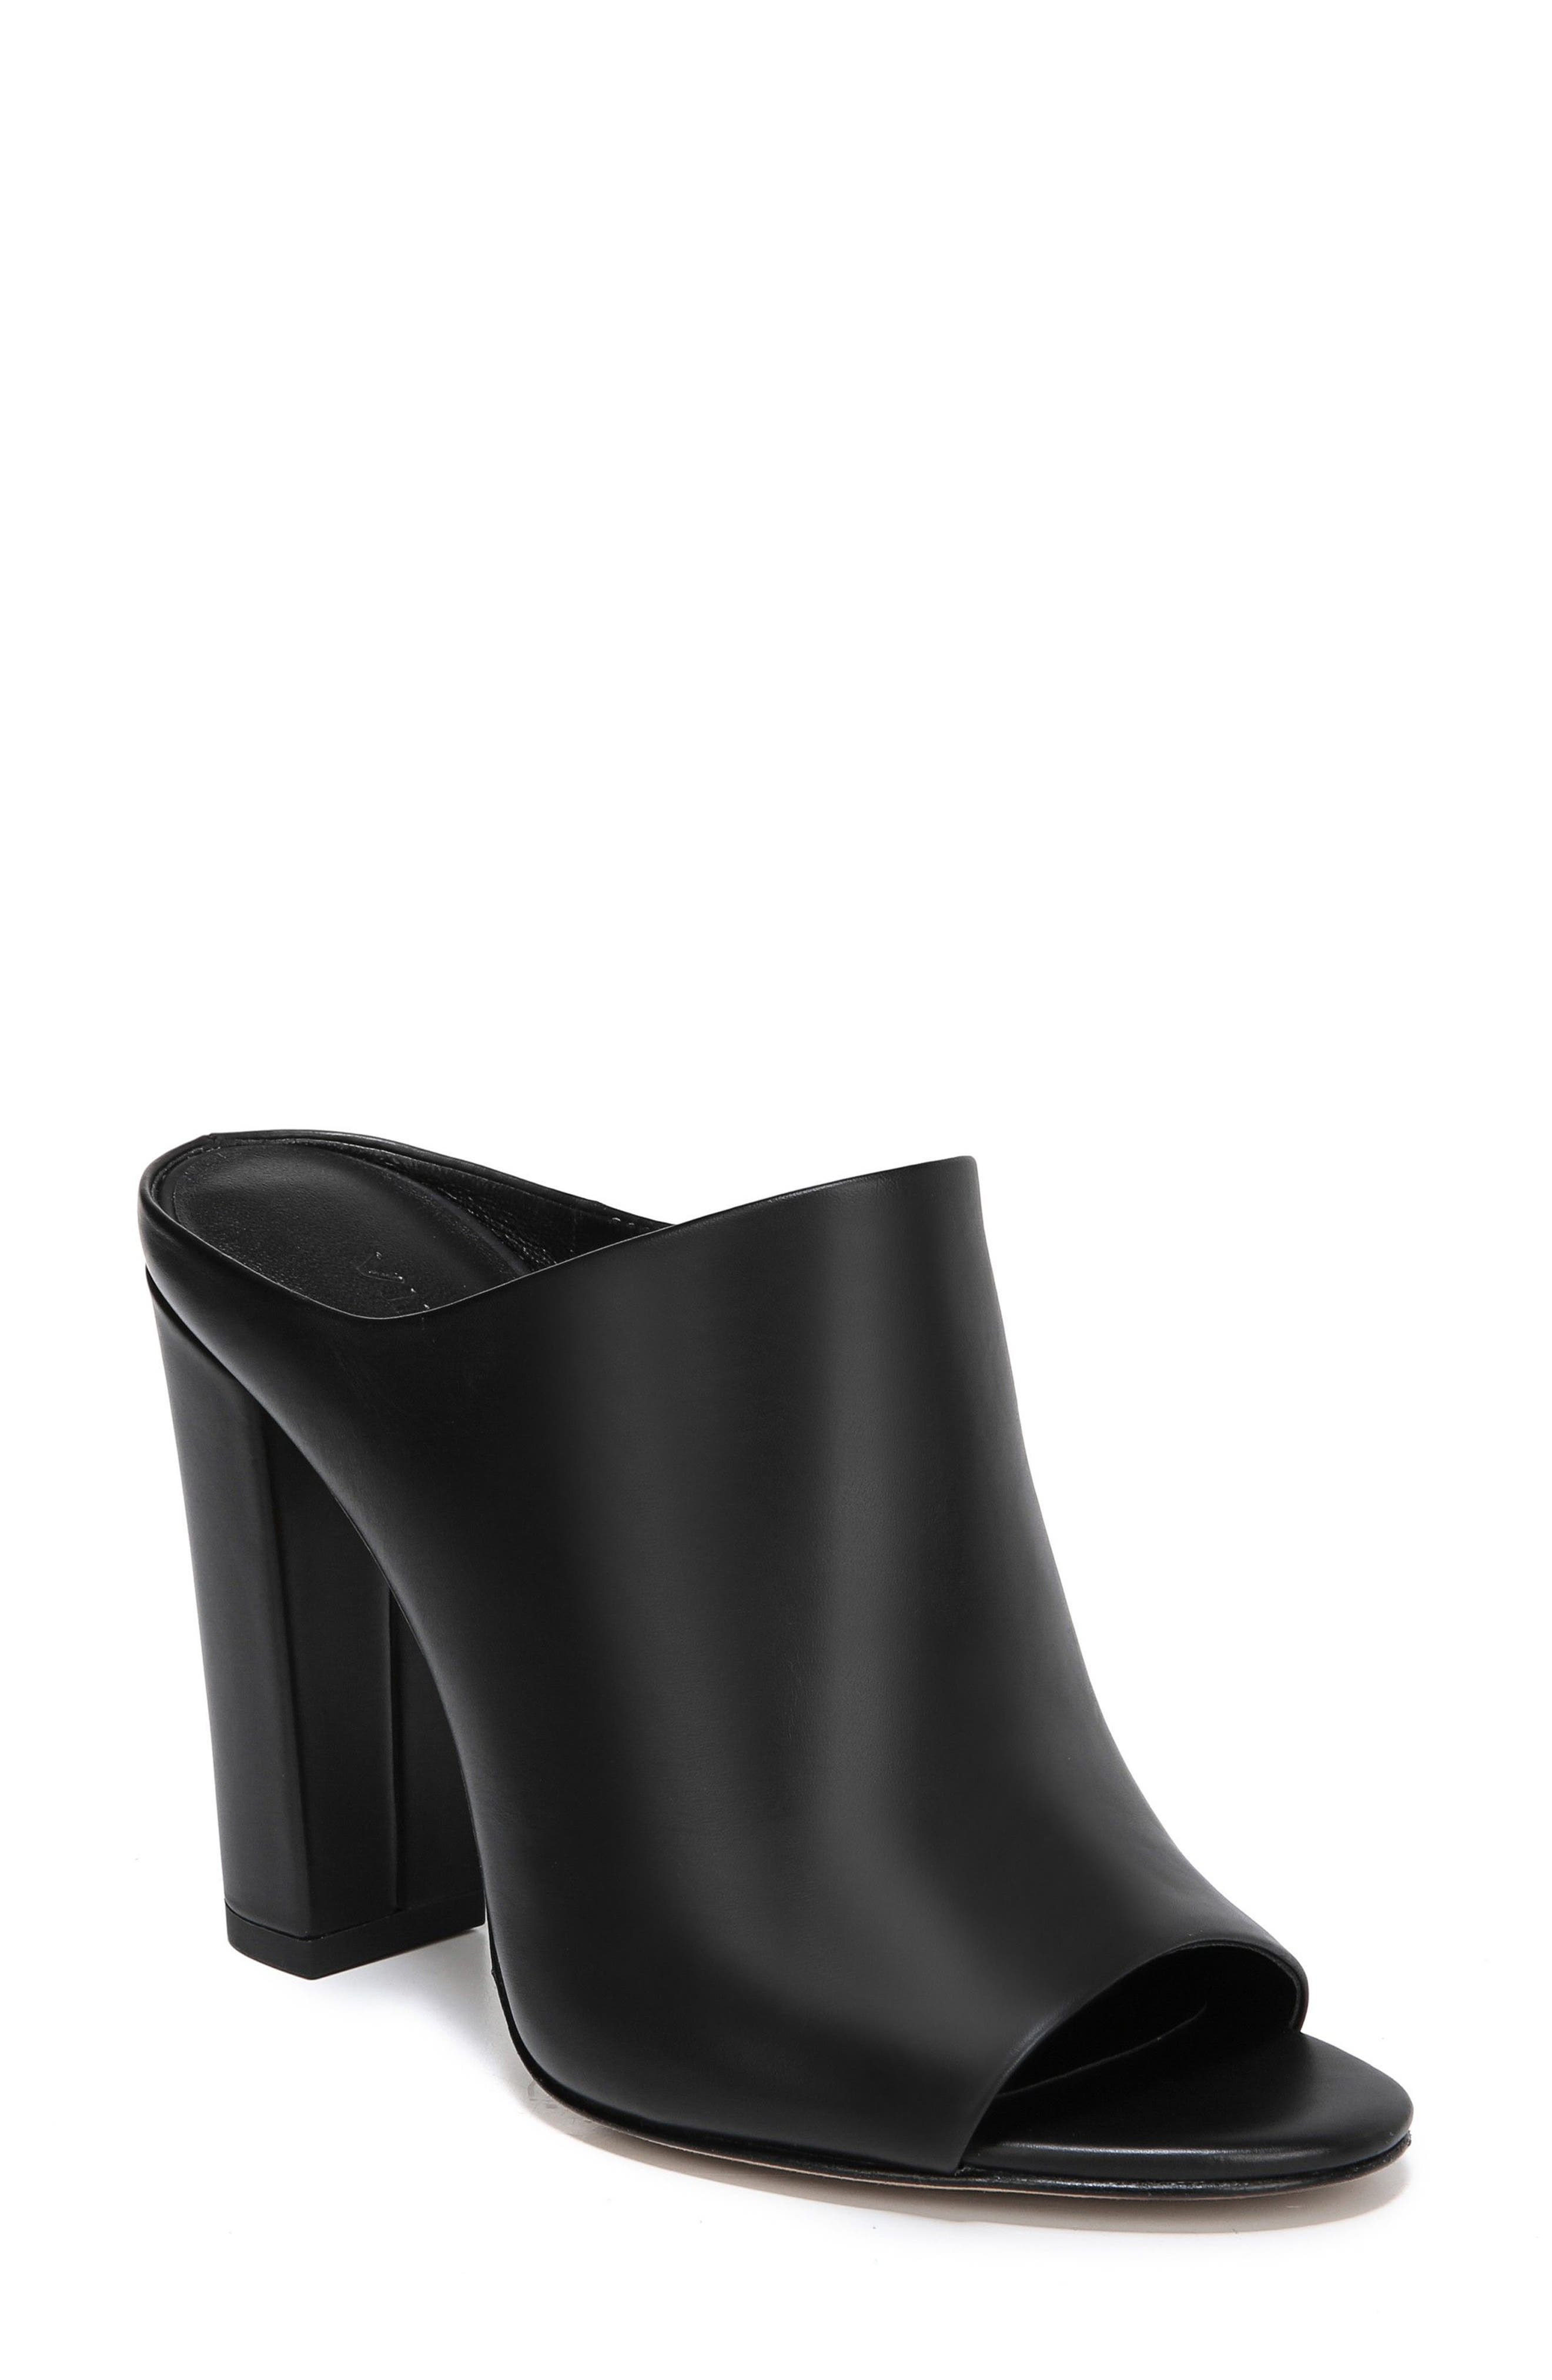 Alora Mule,                             Main thumbnail 1, color,                             BLACK